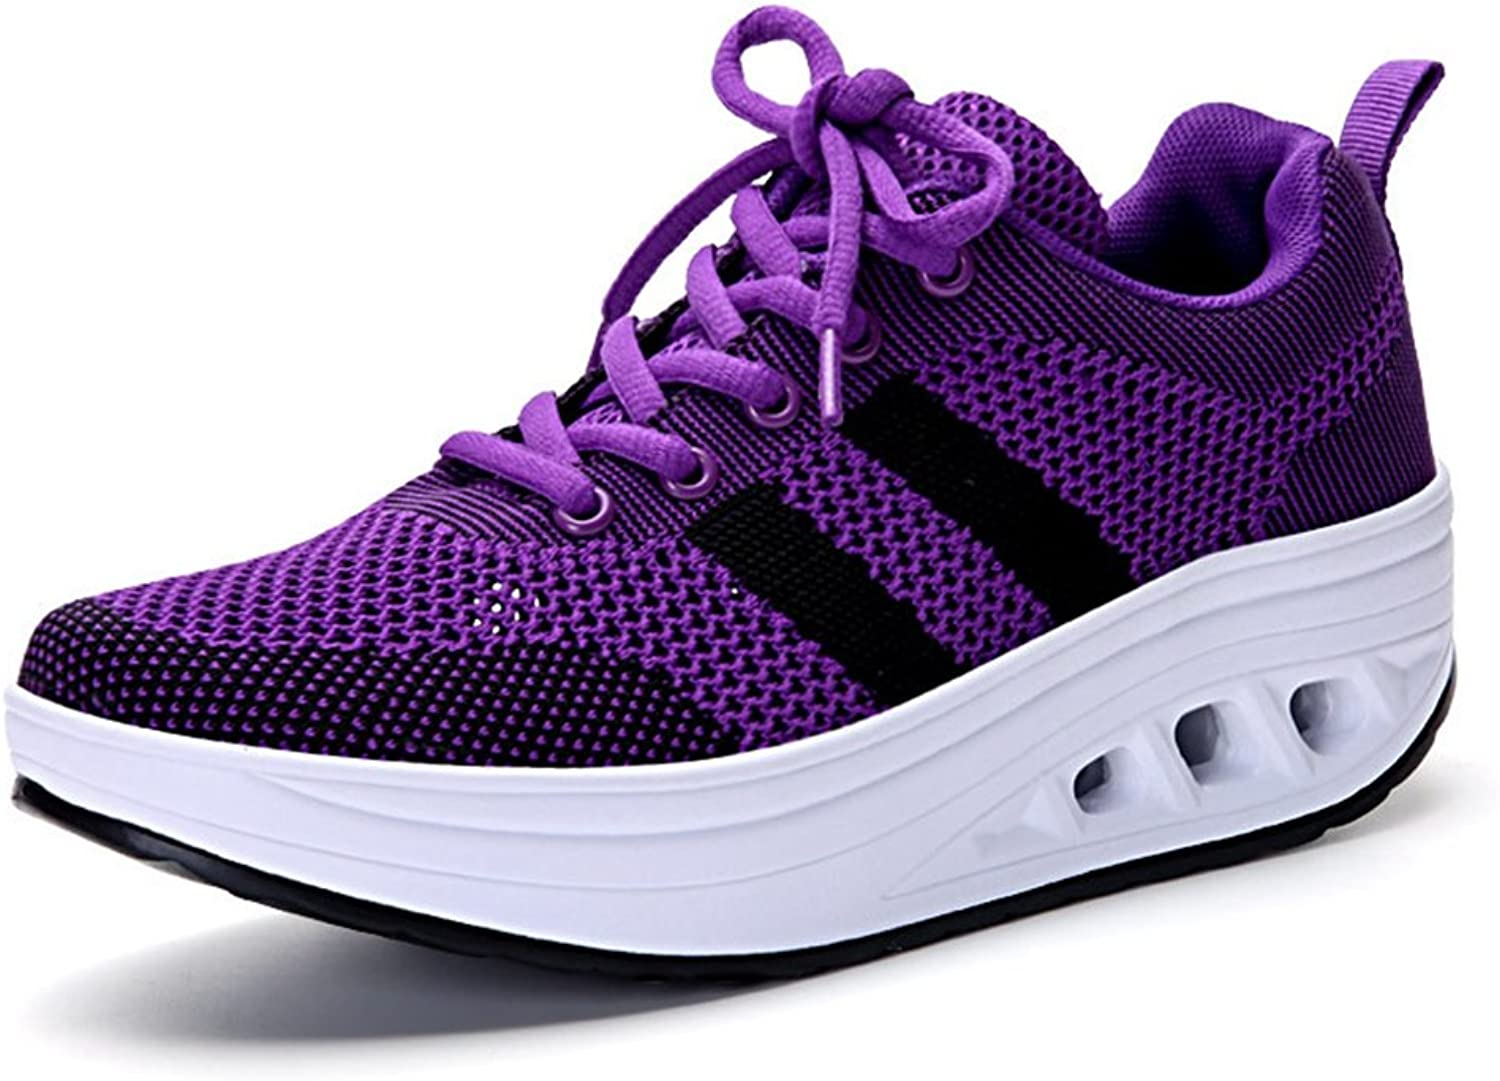 CYBLING Fashion Women Athletic Exercise Breathable shoes Comfort Sport Walking Wedge Sneakers